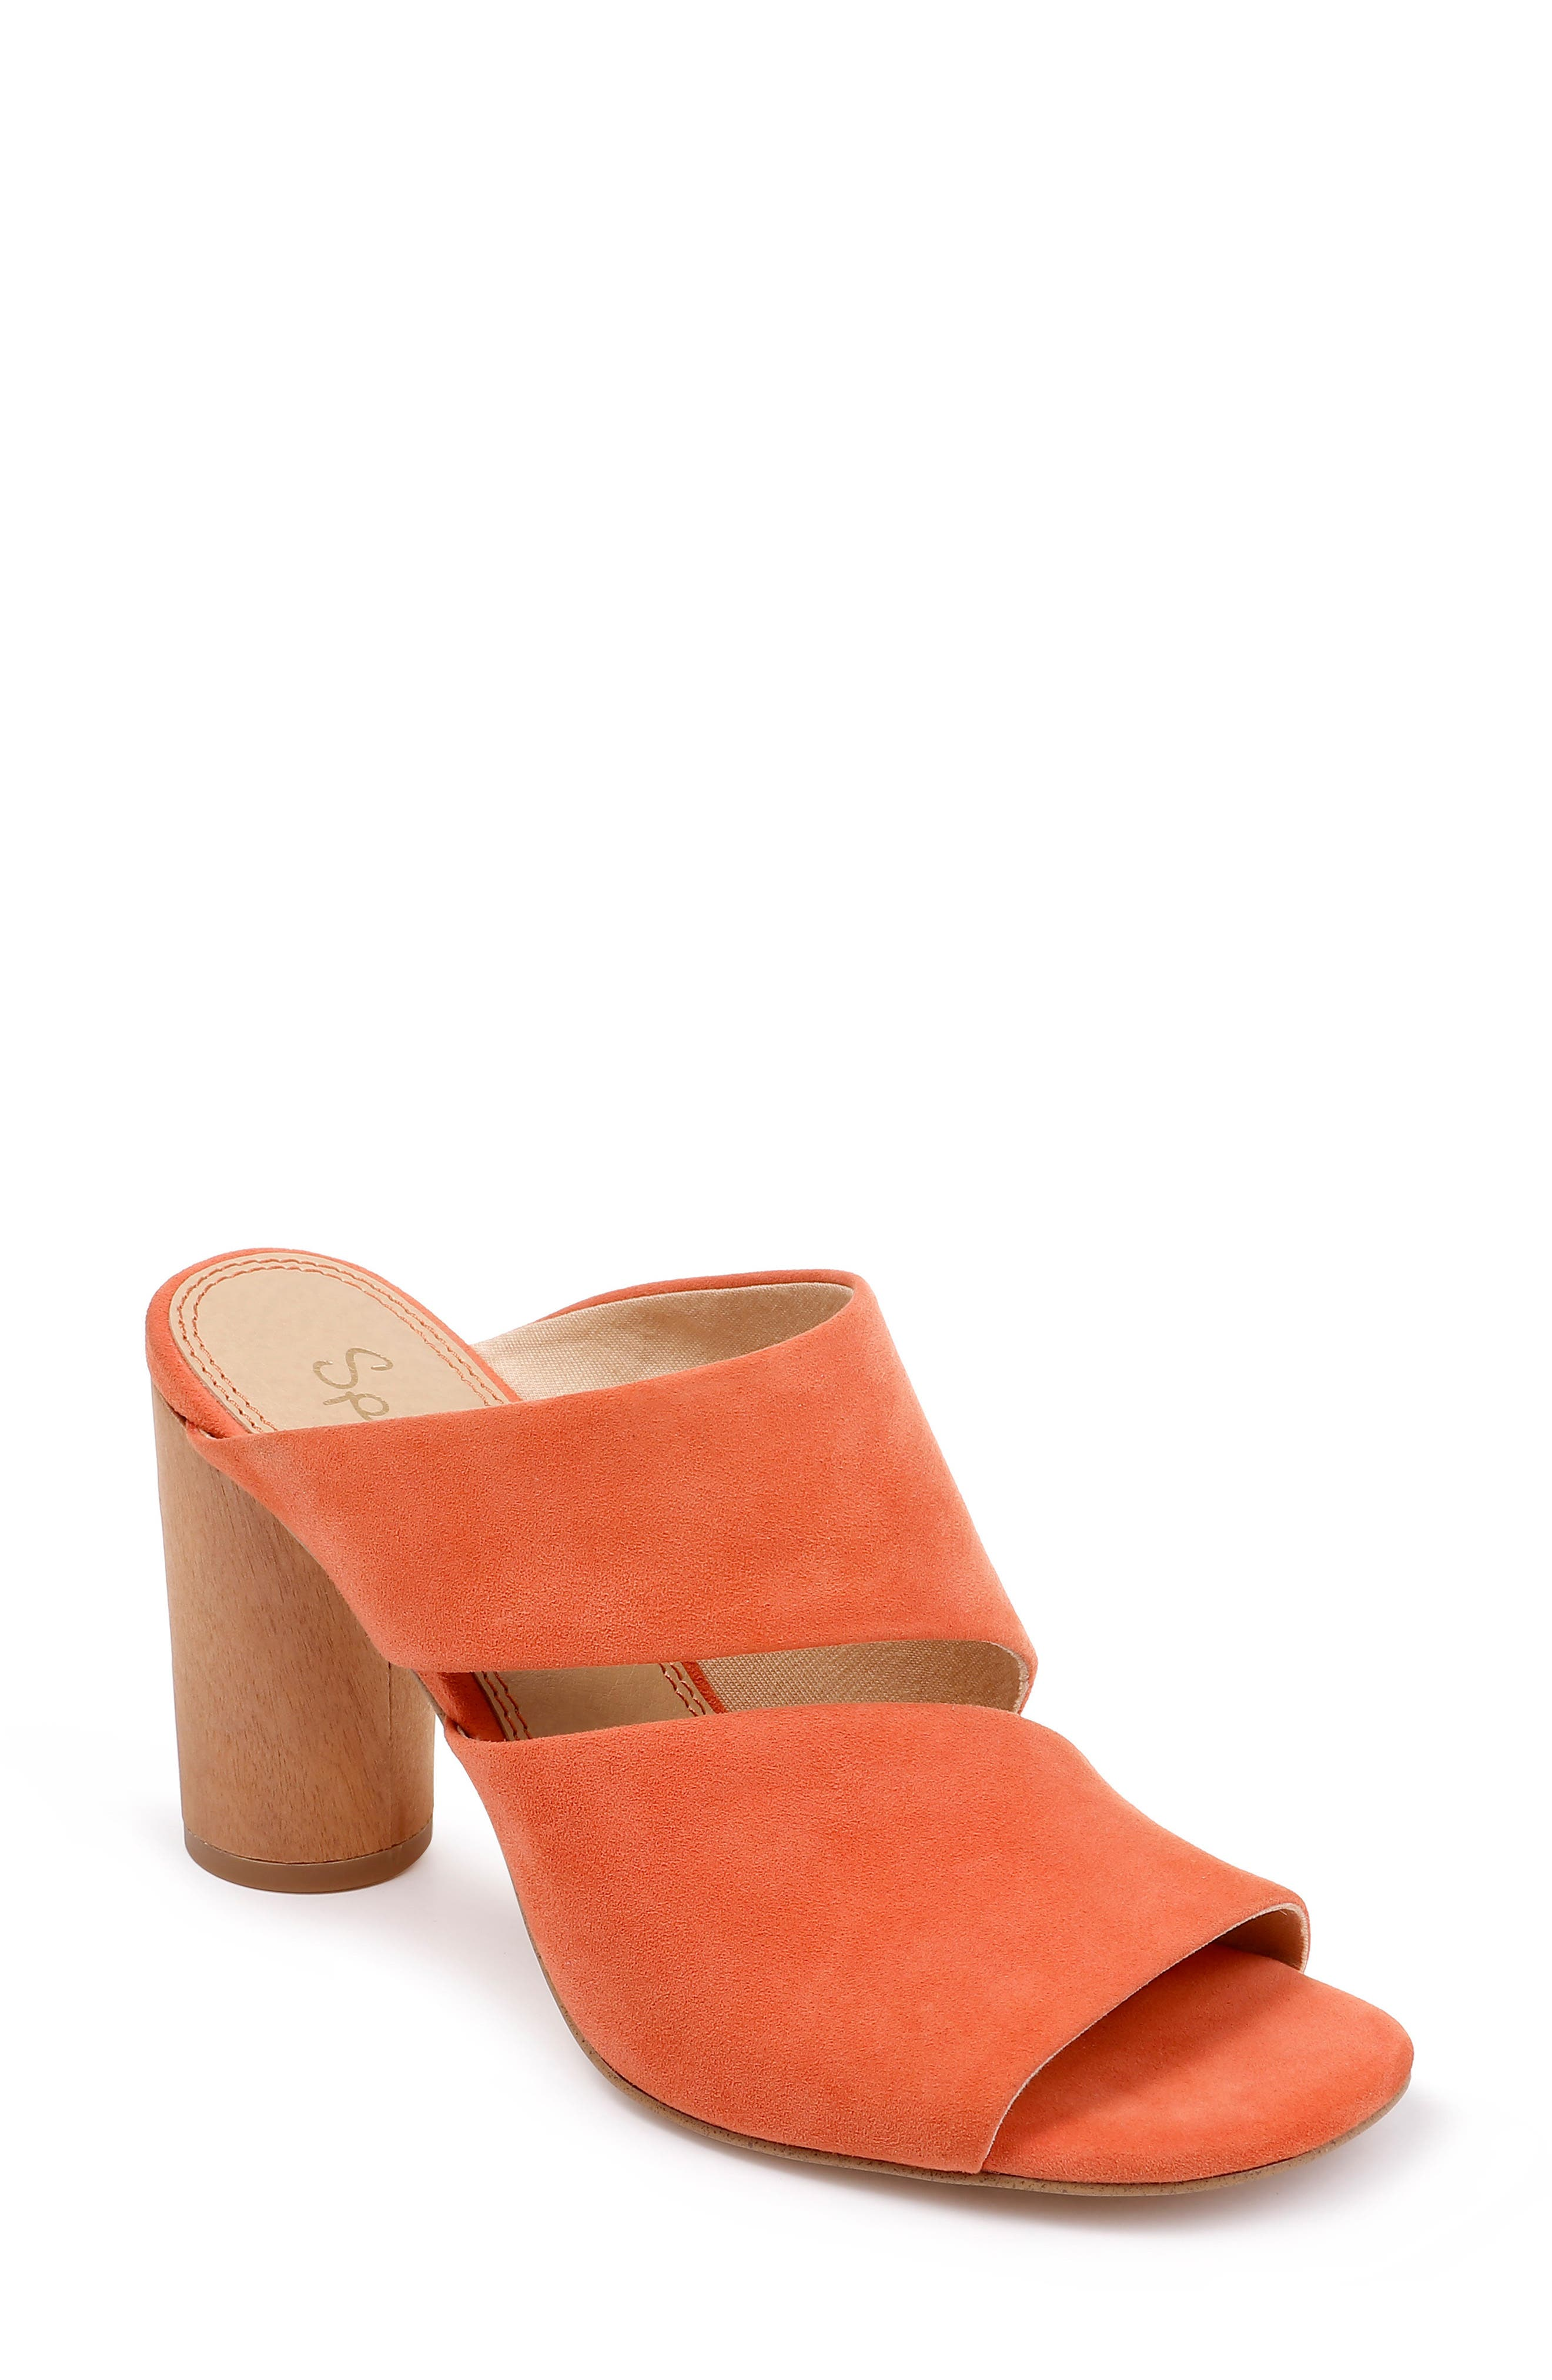 Serenade Sandal,                             Main thumbnail 1, color,                             ORANGE SUEDE